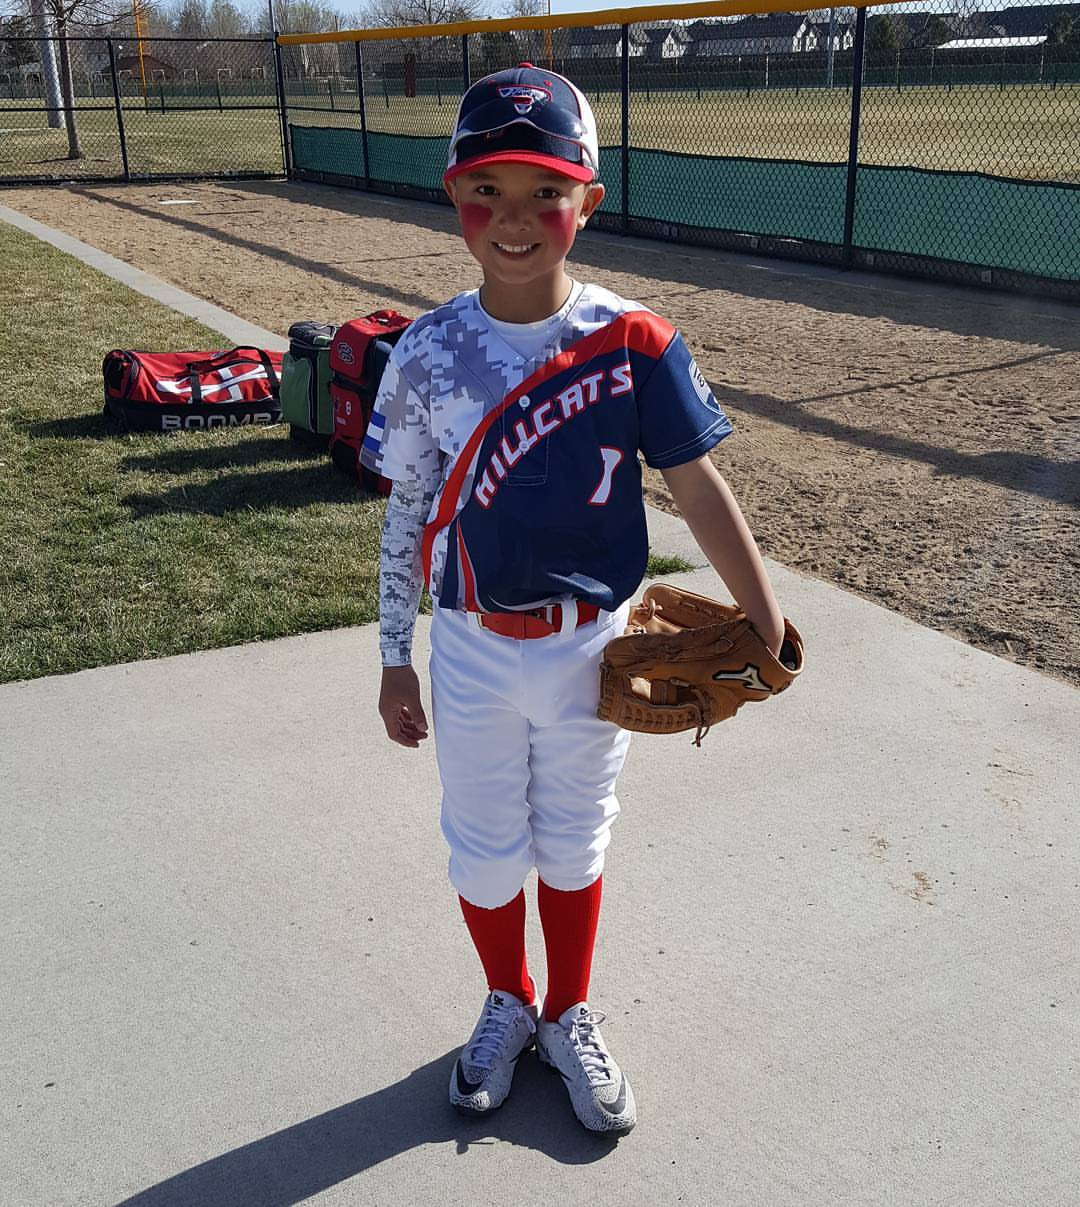 Blue Red White Gray baseball uniforms jersey shirts, pants